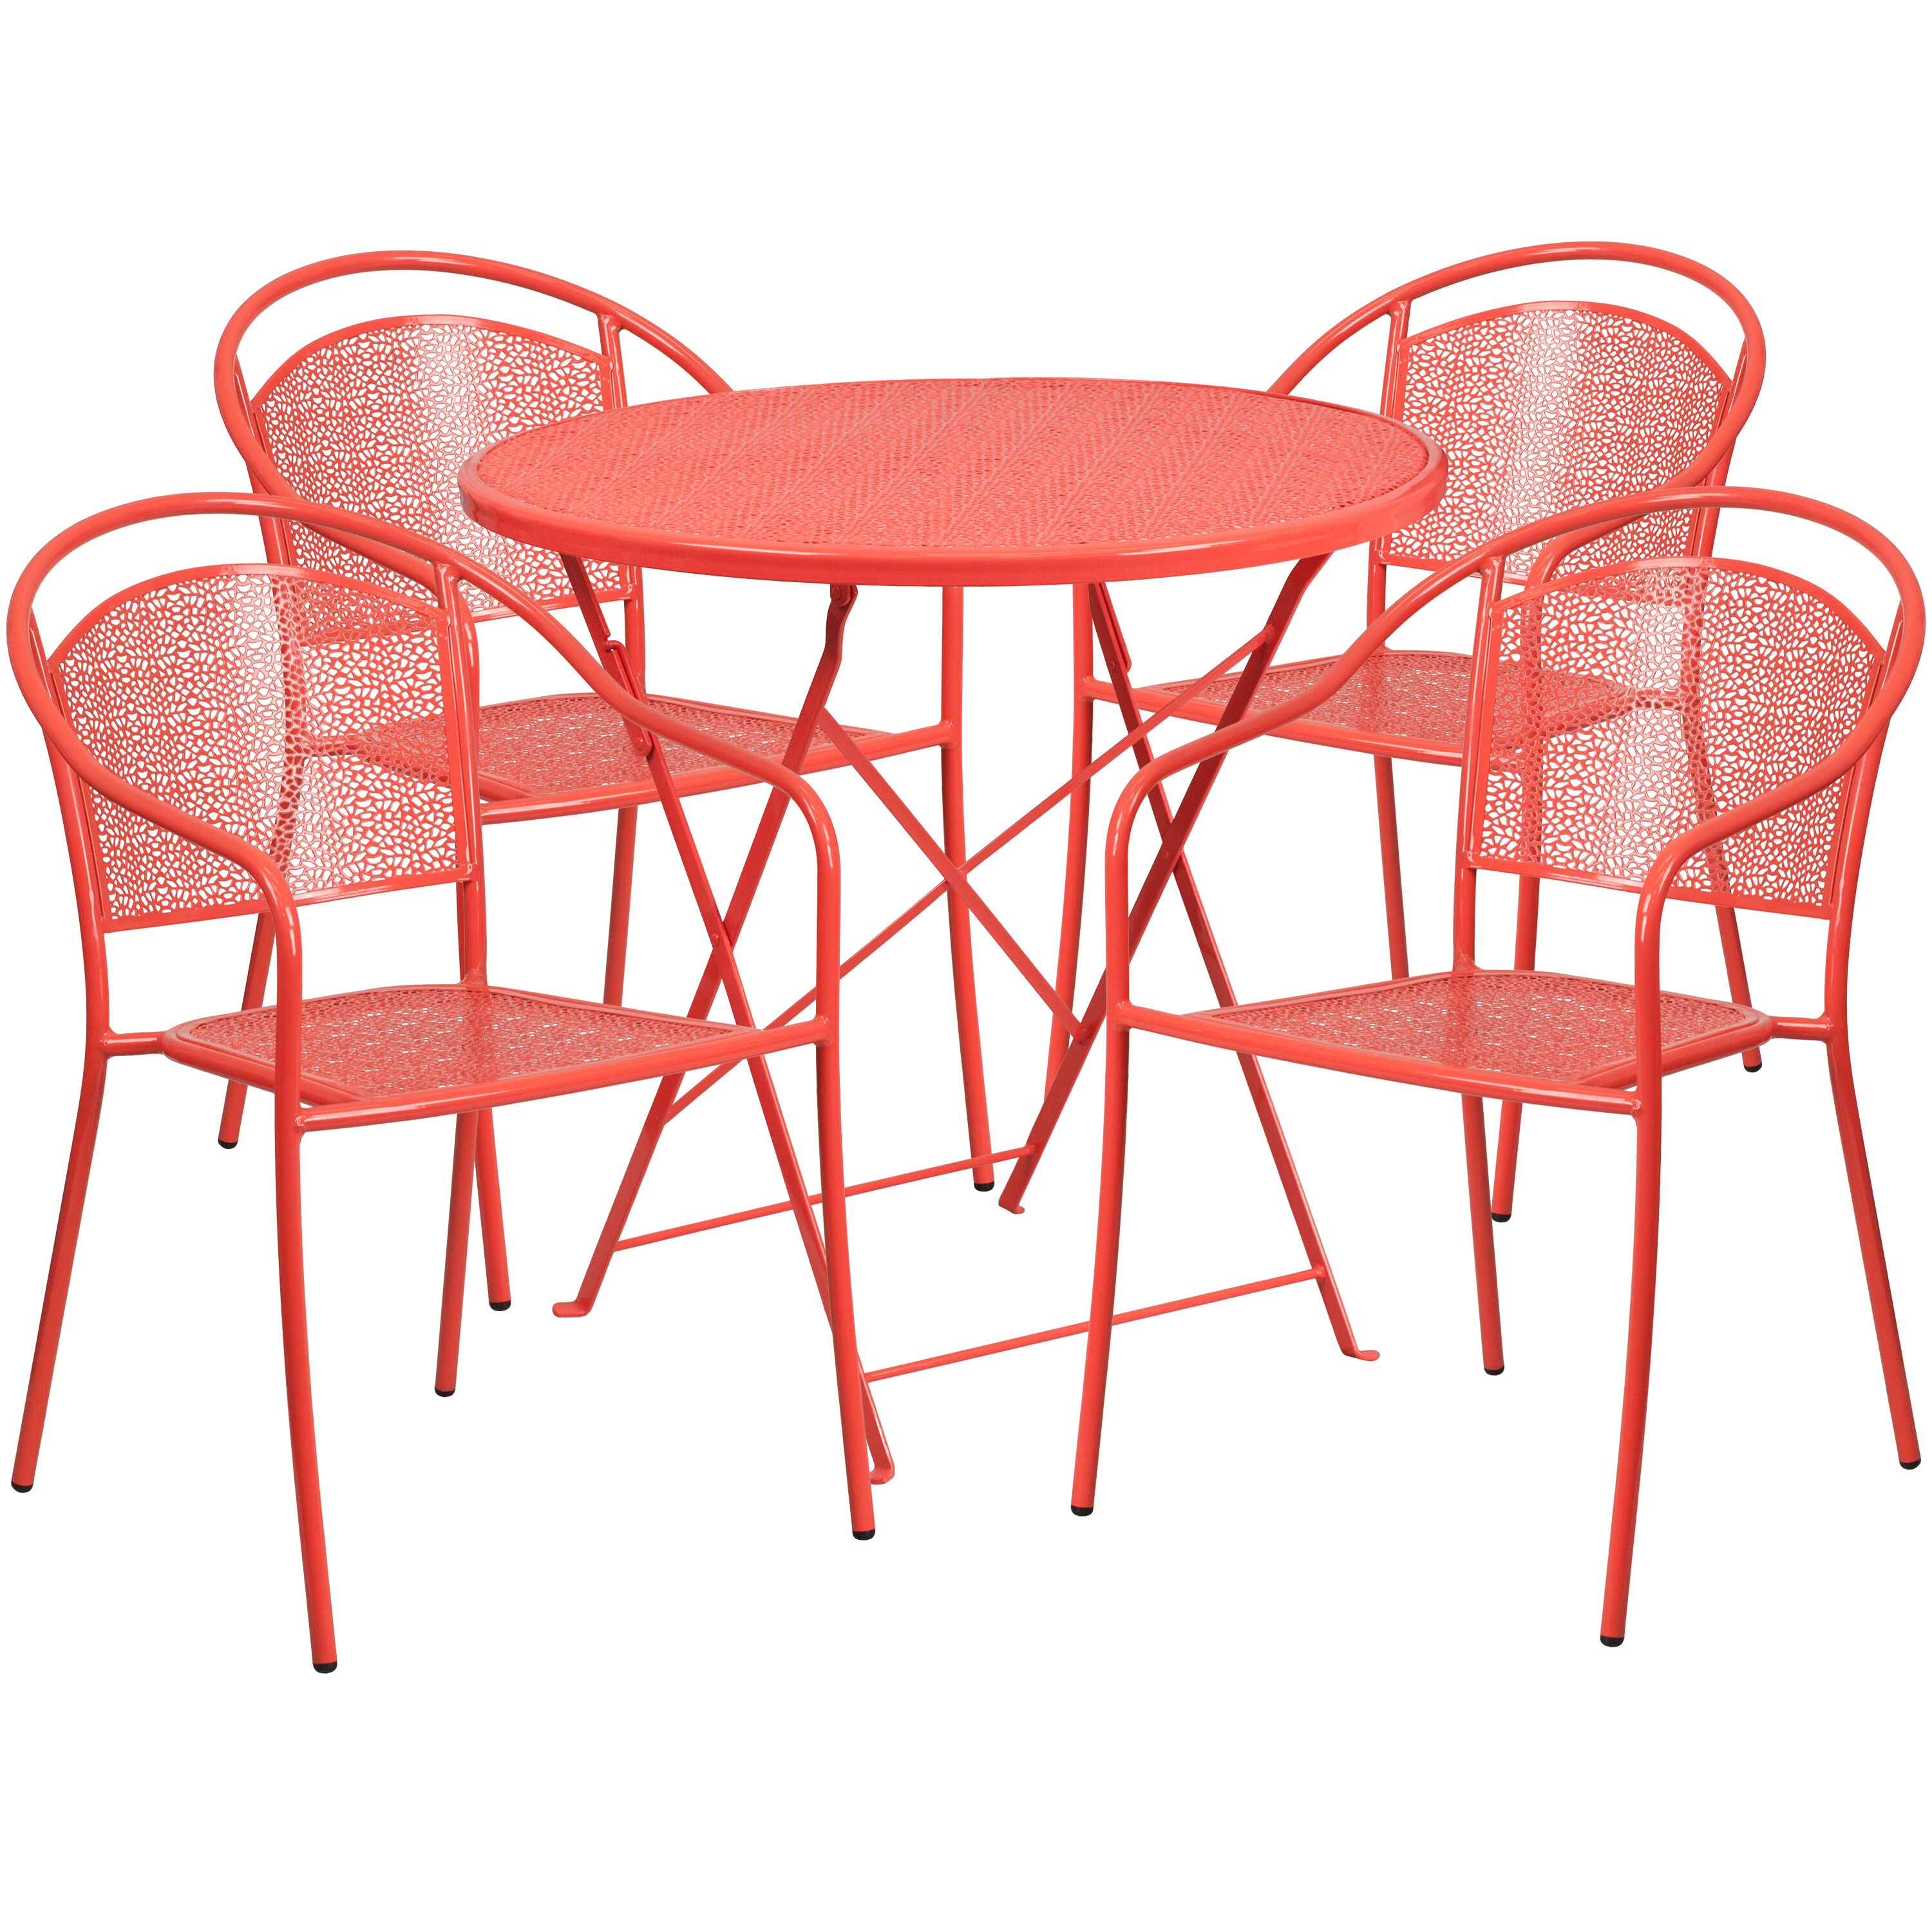 Red Patio Chairs 30 Round Coral Indoor Outdoor Steel Folding Patio Table Set With 4 Round Back Chairs